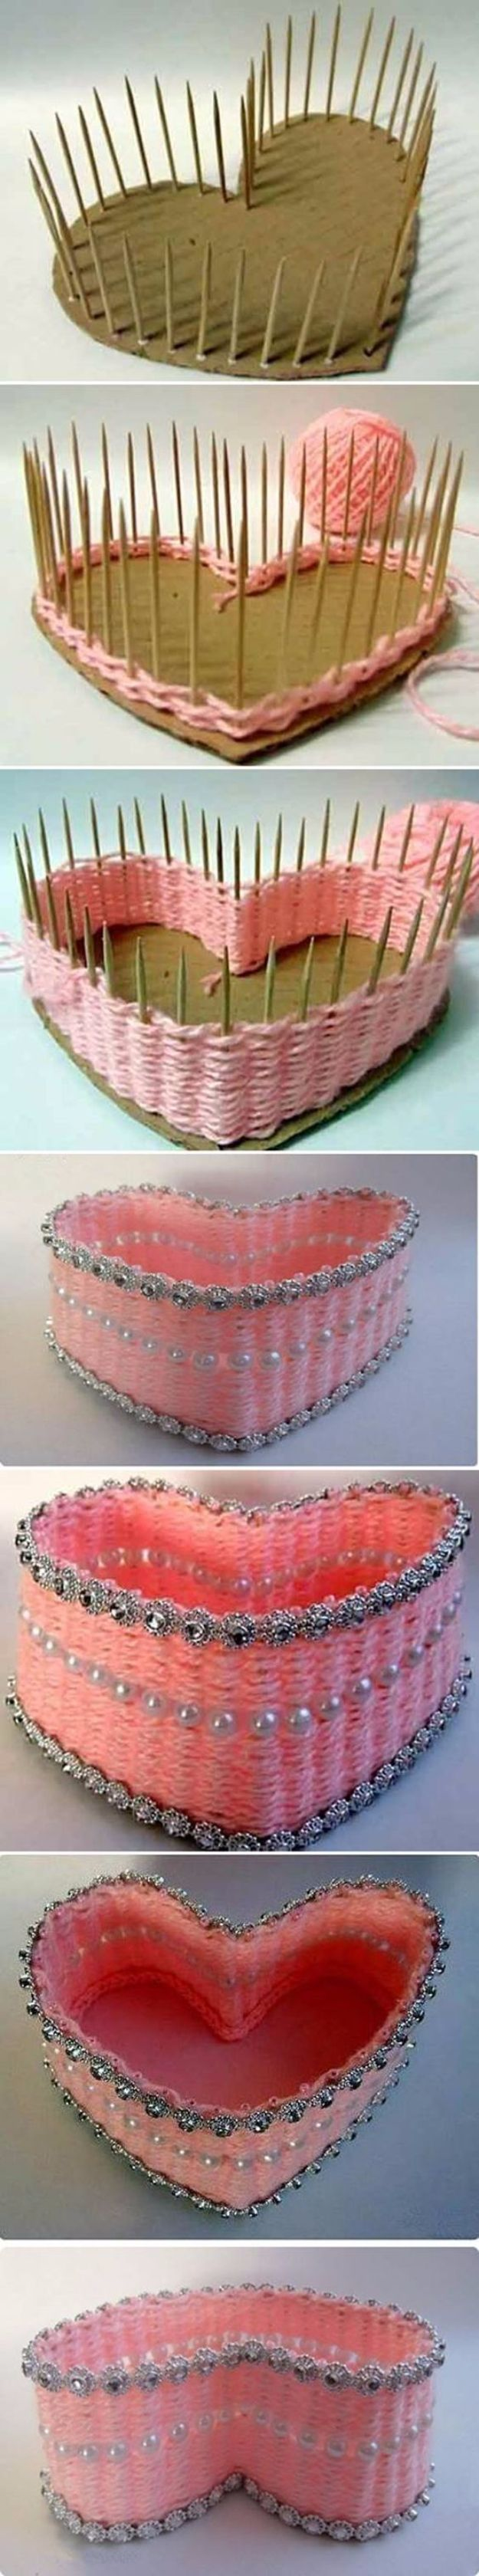 31 Cool Crafts Made With Baskets #baskets #crafts